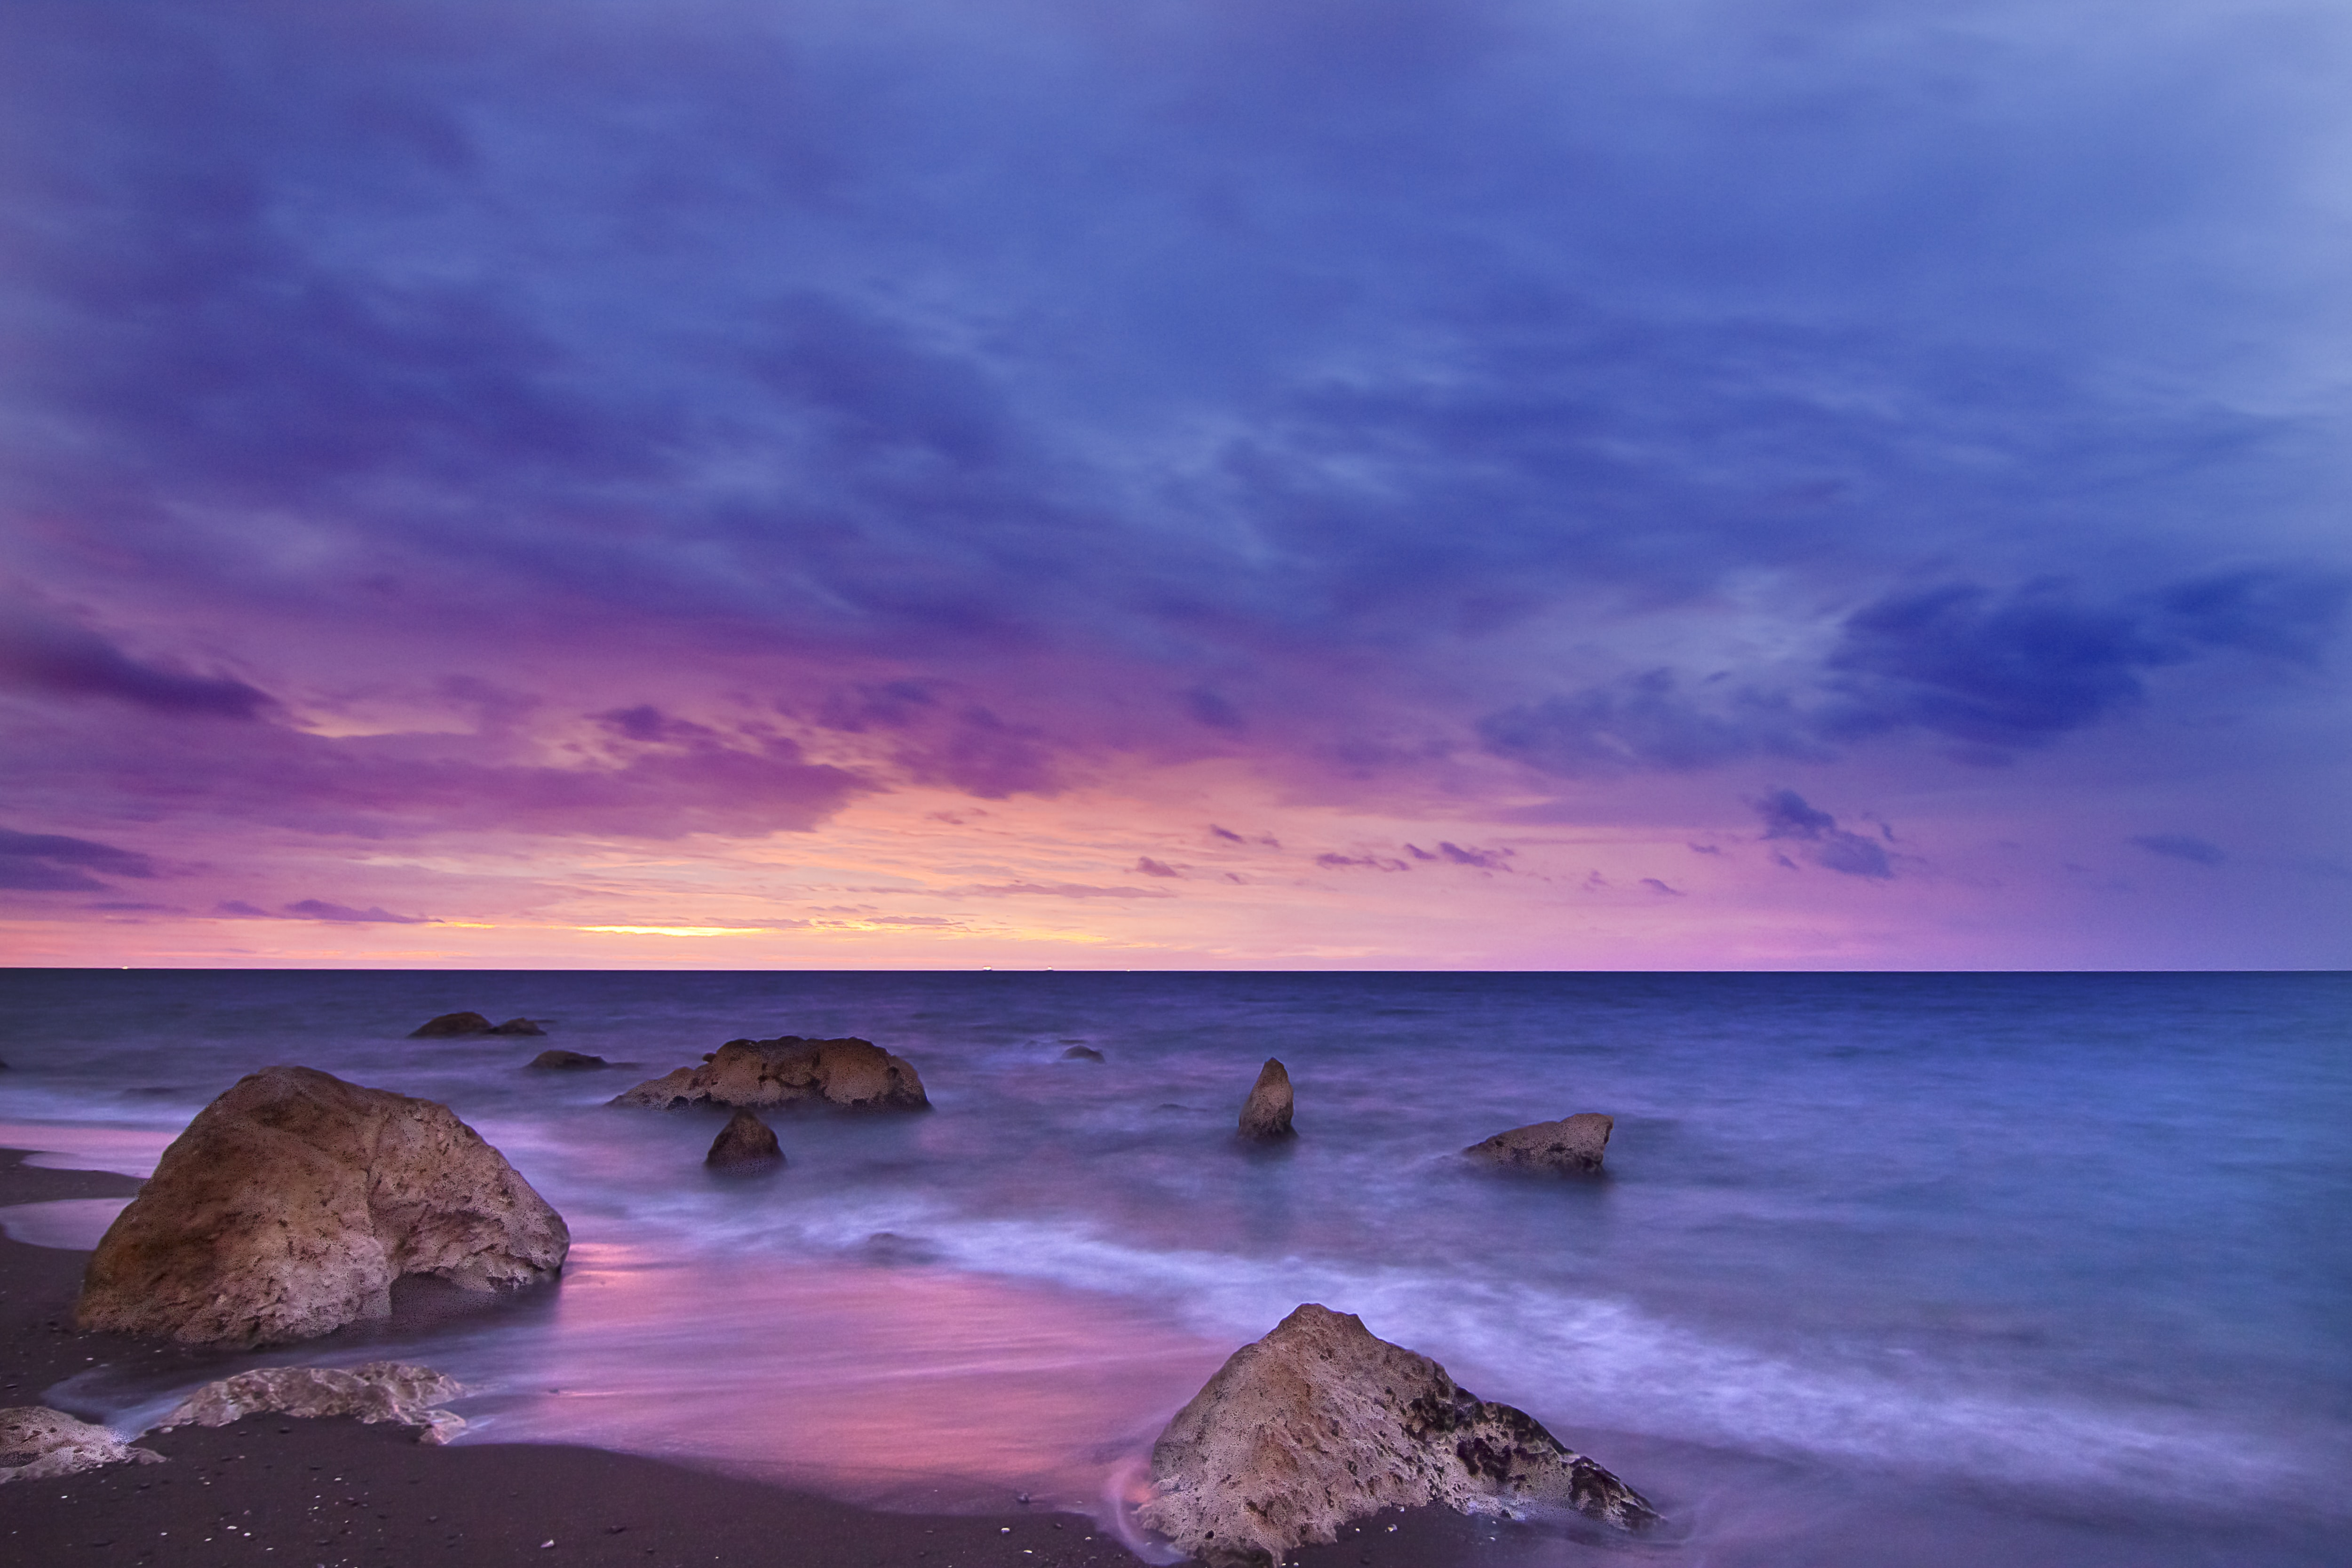 Rocks sit in a calm sea at twilight as the sunset creates a pink, purple, and navy sky at Playa del Peñón del Cuervo.